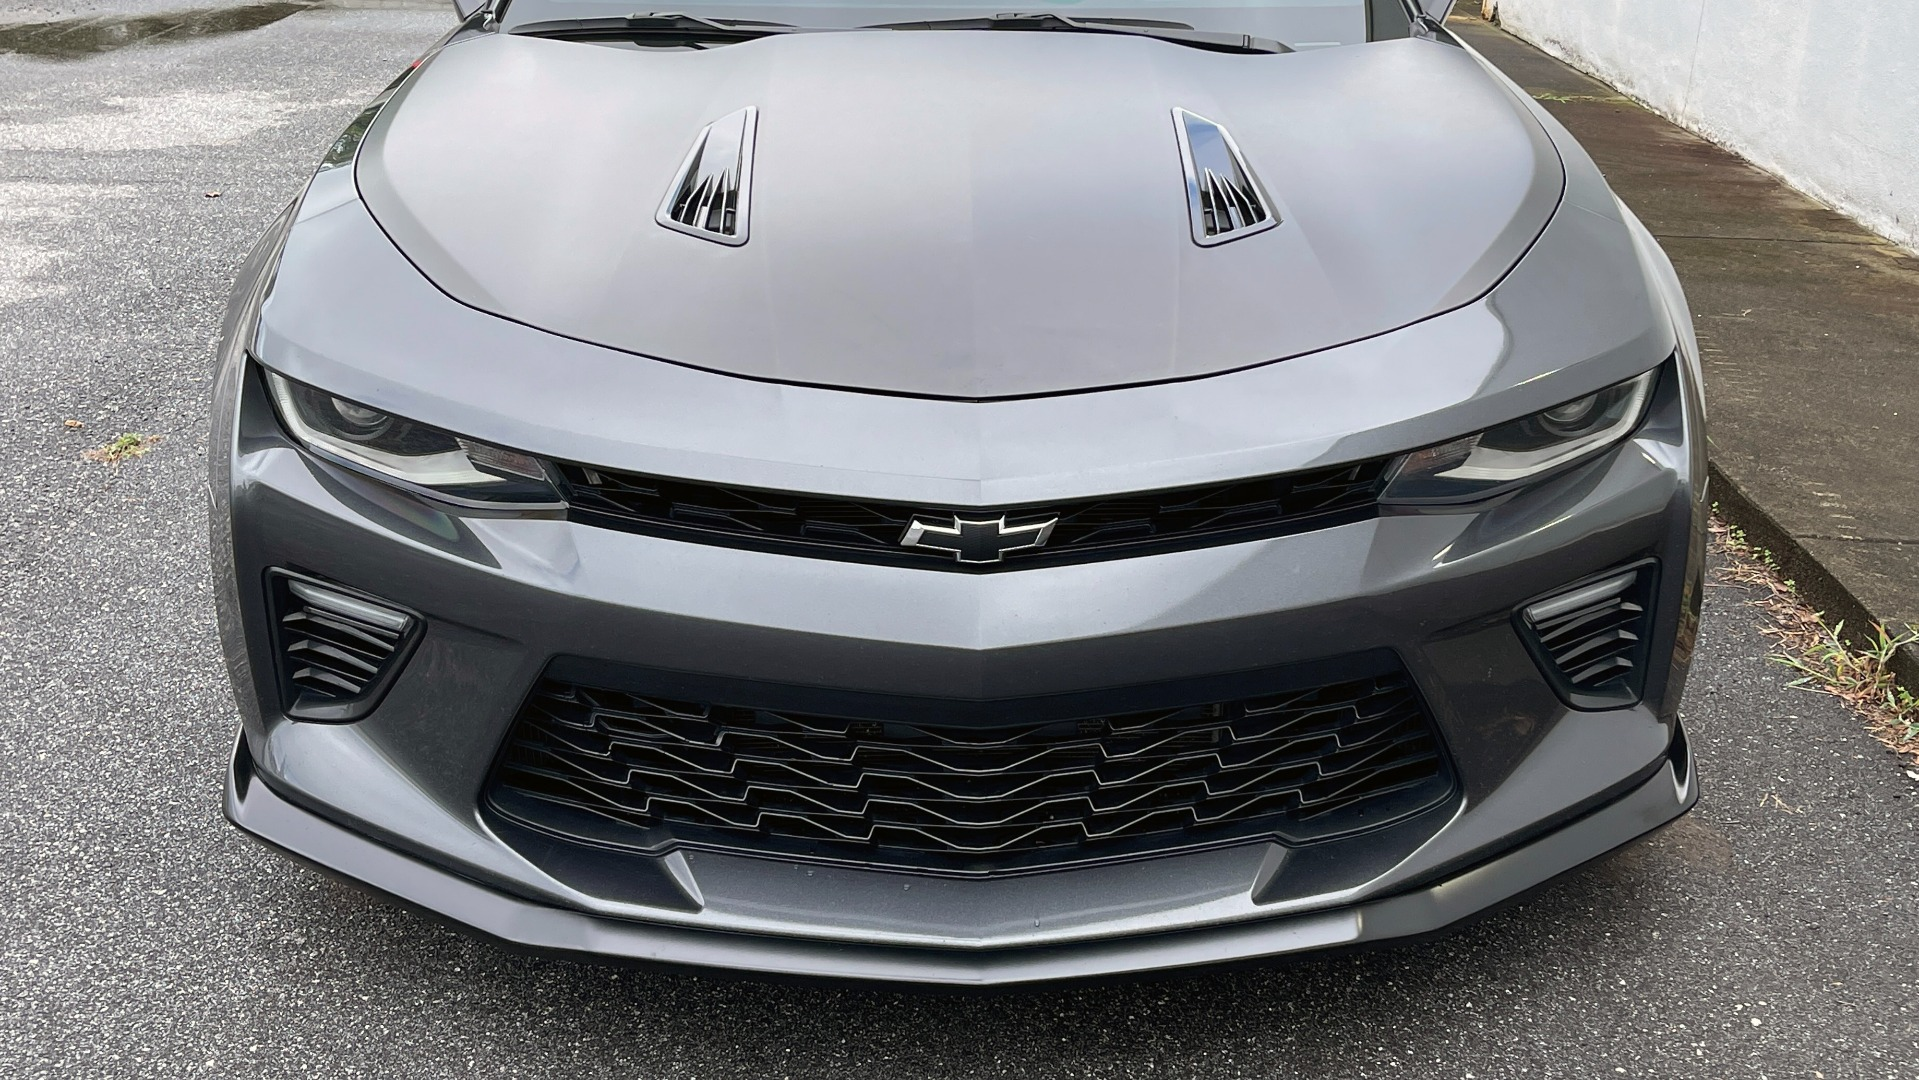 Used 2018 Chevrolet CAMARO 2SS / 6.2L V8 / MANUAL / 1LE TRACK PKG / NAV / BOSE / REARVIEW for sale $39,795 at Formula Imports in Charlotte NC 28227 12